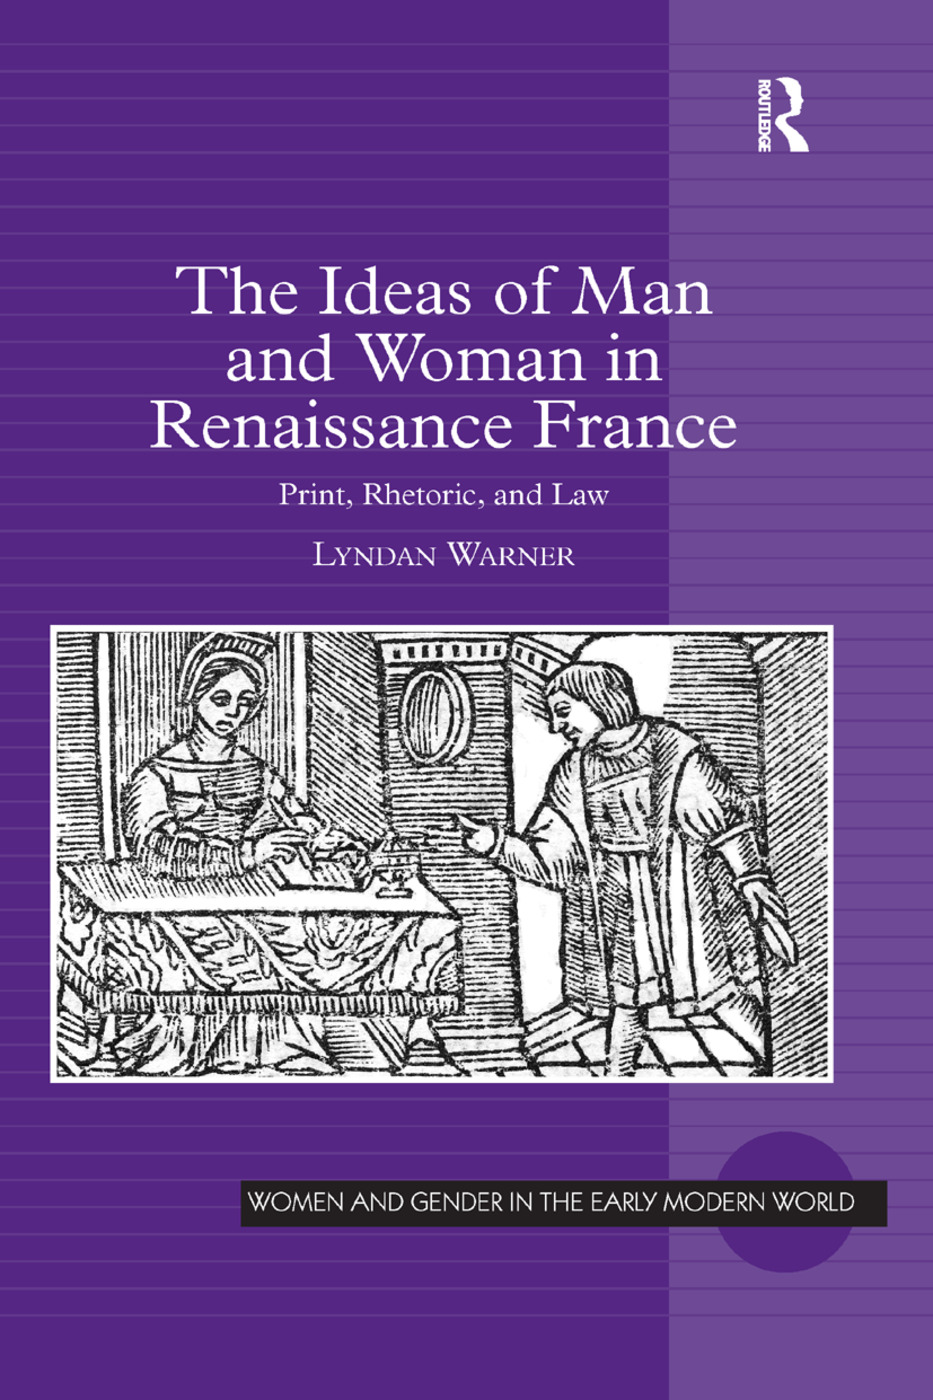 The Ideas of Man and Woman in Renaissance France: Print, Rhetoric, and Law book cover